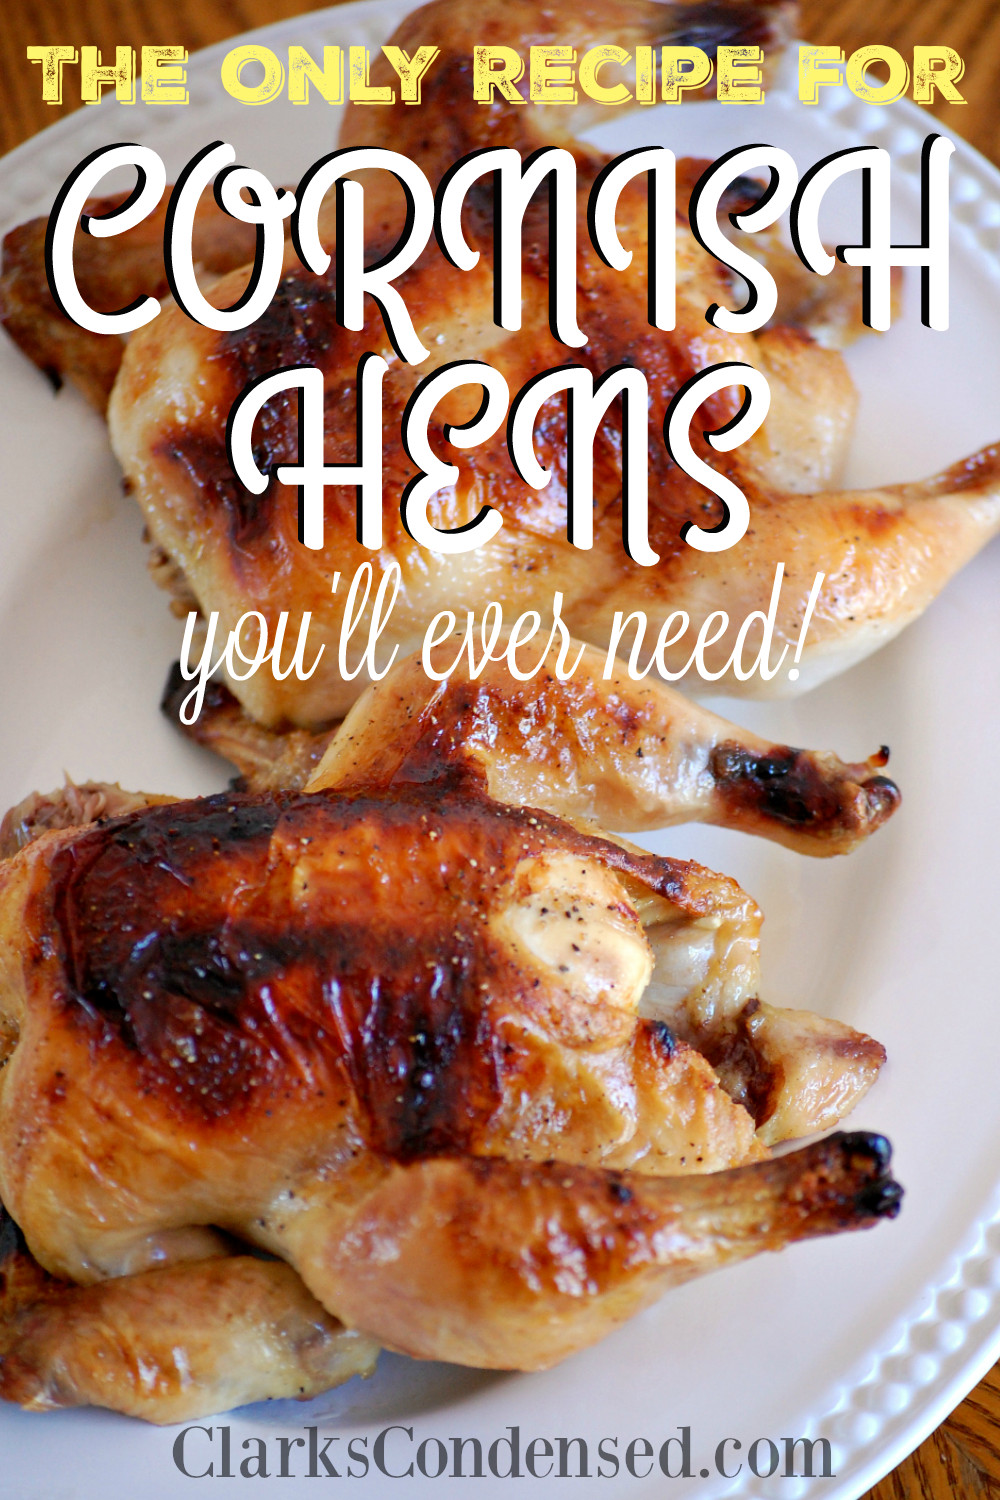 Recipes Cornish Game Hens  The ly Recipe for Cornish Hens You Will Ever Need